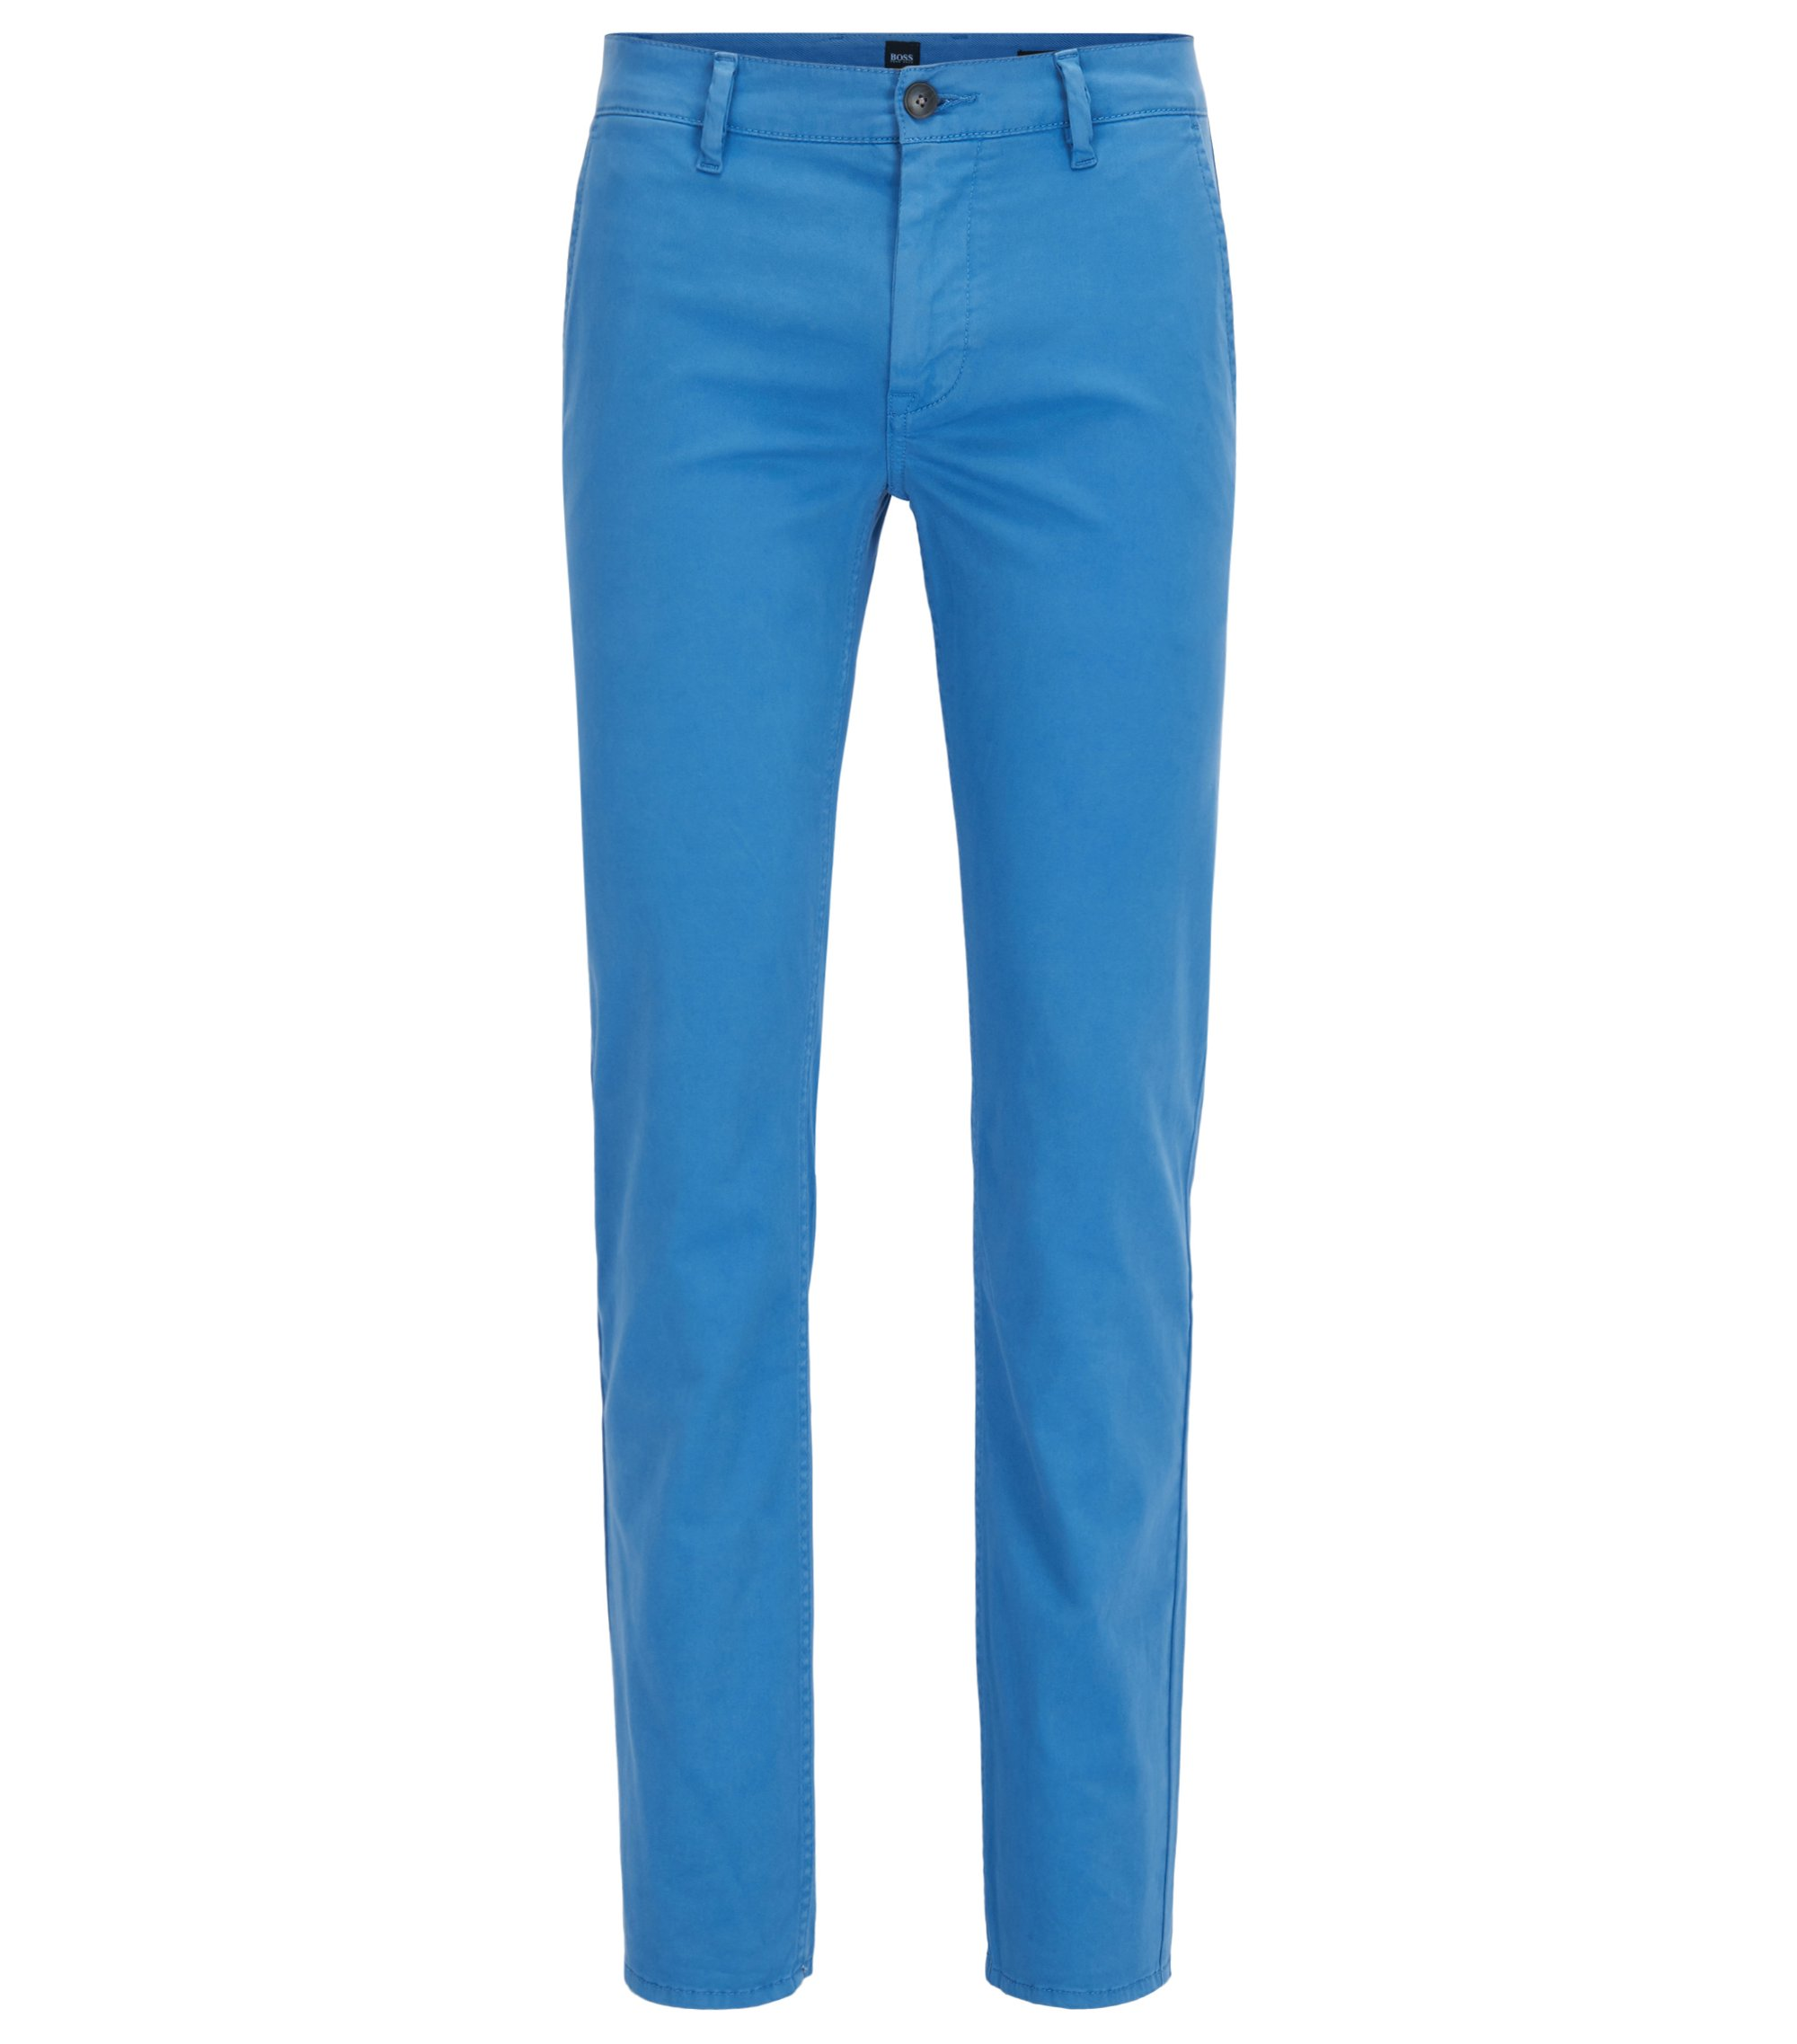 Pantalon Slim Fit en coton stretch, Bleu